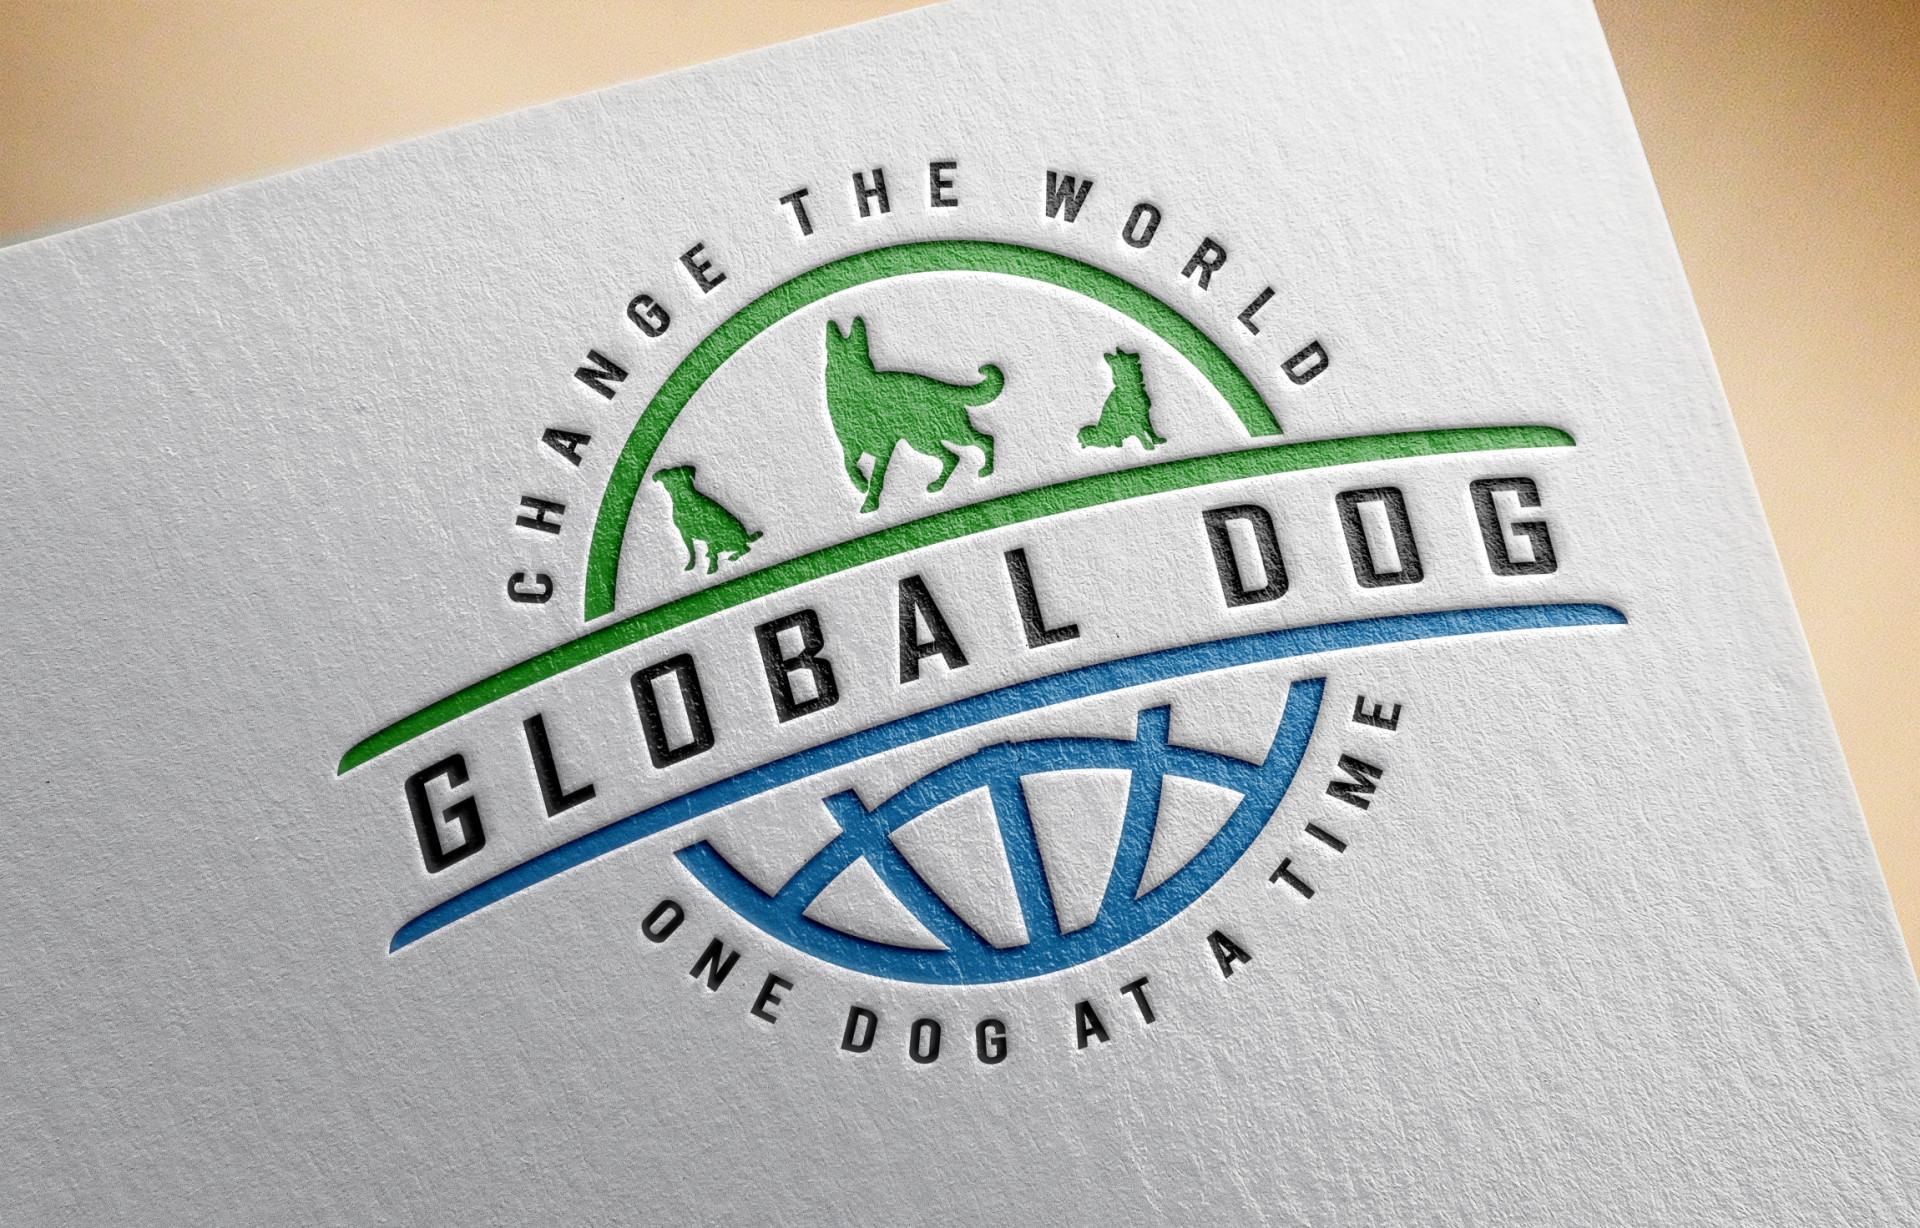 Global Dog Foundation makes a better world for dogs